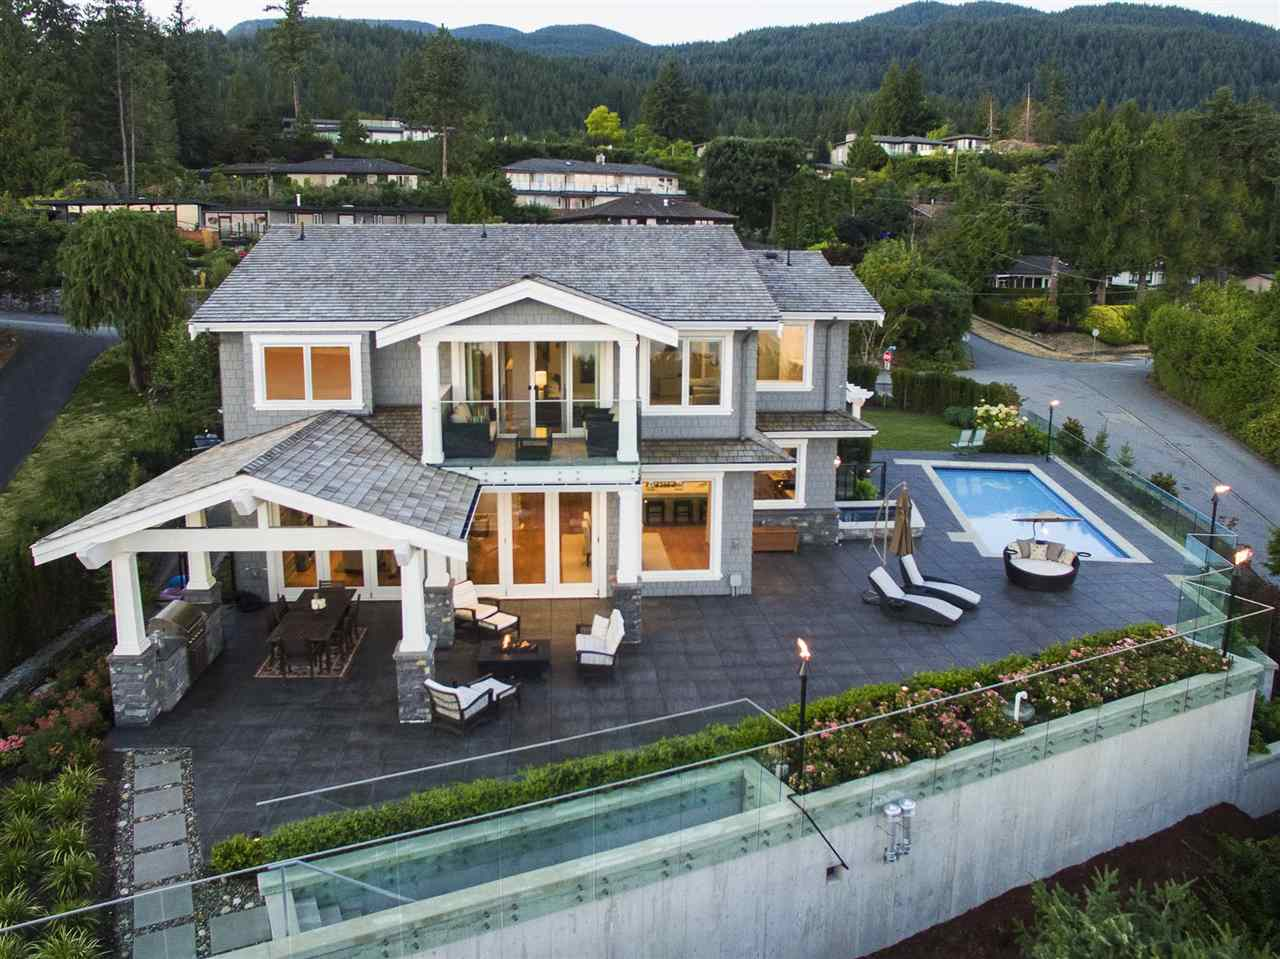 "QUALITY! QUALITY! QUALITY! Sensational ""Custom"" Built Home w/unobstructed view from Lions Gate Bridge/Down Town/Stanley Park to UBC & Van Isld! Built by renowned German Builder, Ron Osterman of Can Rel Homes, this amazing home boasts extraordinary workmanship throughout. Main: flat driveway, grand foyer, 16ft vaulted ceiling, stunning great-rm, formal dining rm, prof gourmet kitch, roughed-in WOK kitch, 3 10ft folding drs opening to expansive covered patios, outdr BBQ/Music & cov'd swimming pool/hot-tub. Upper: Oversized master w/elegant en-suite & walk-in, plus 2 oversized en-suited bdrms w/walk-ins. Lower: 10 ft ceiling huge rec/media rm, large en-suited bdrm, gym & fab wine cellar, Ideal home for entertaining! A MUST SEE!!!"